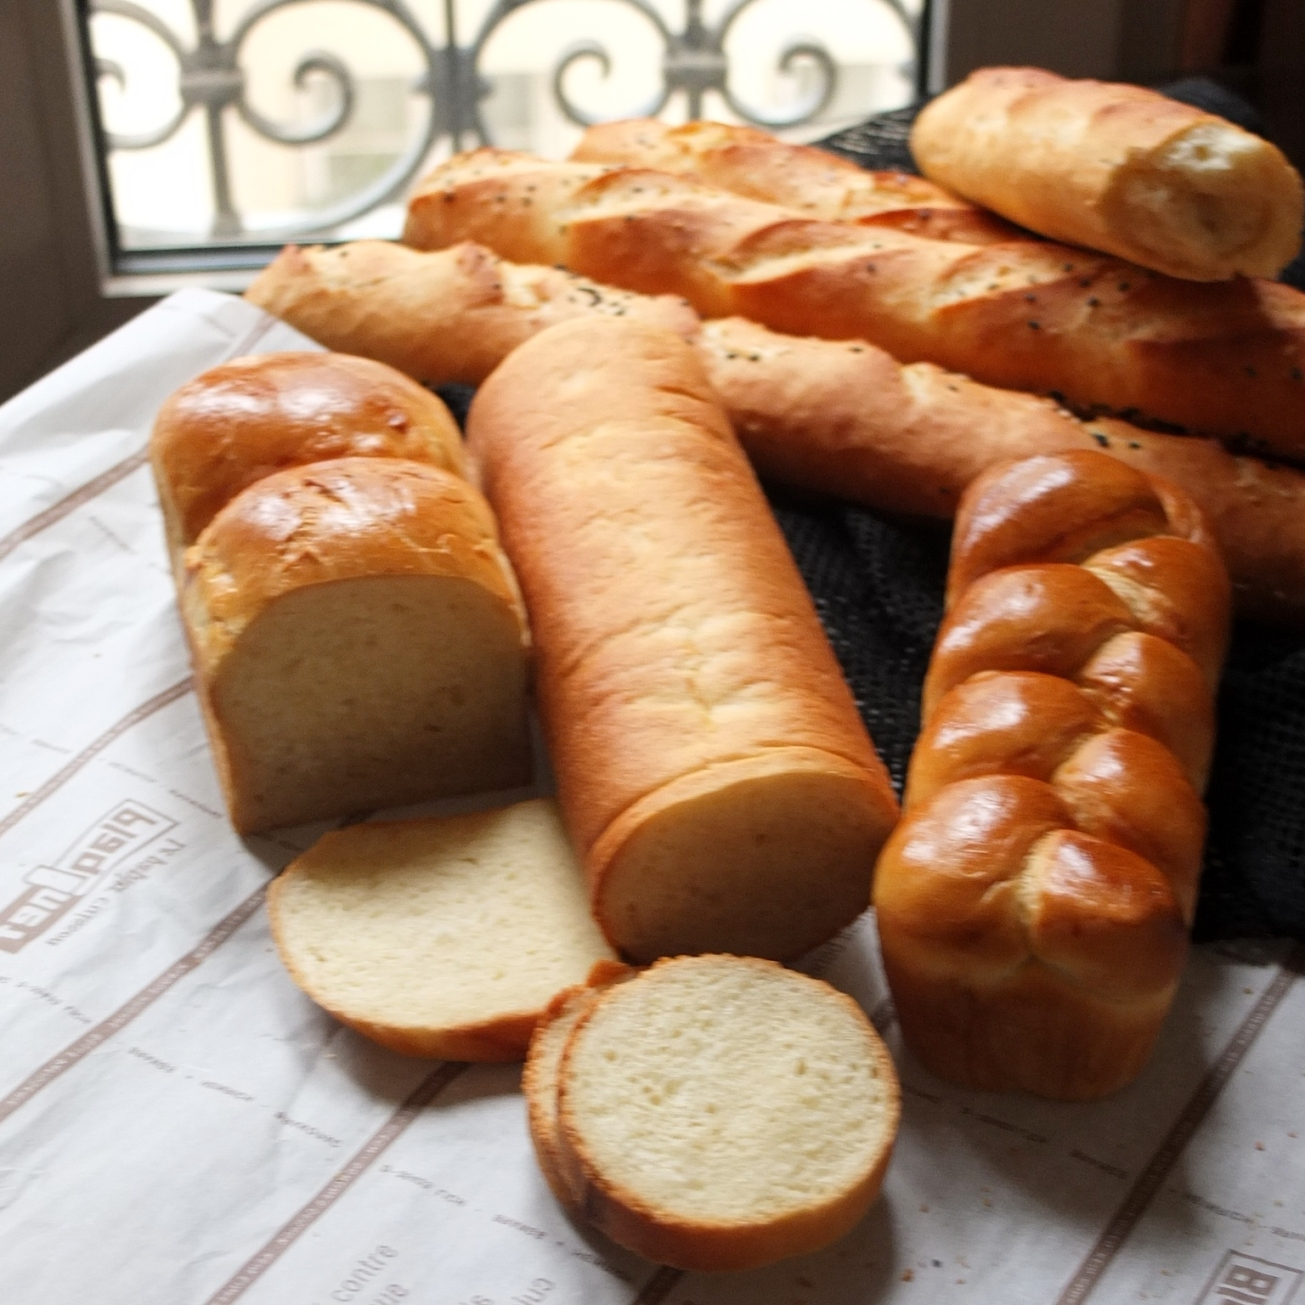 French baguette and pain de mie (sandwich/toast bread)